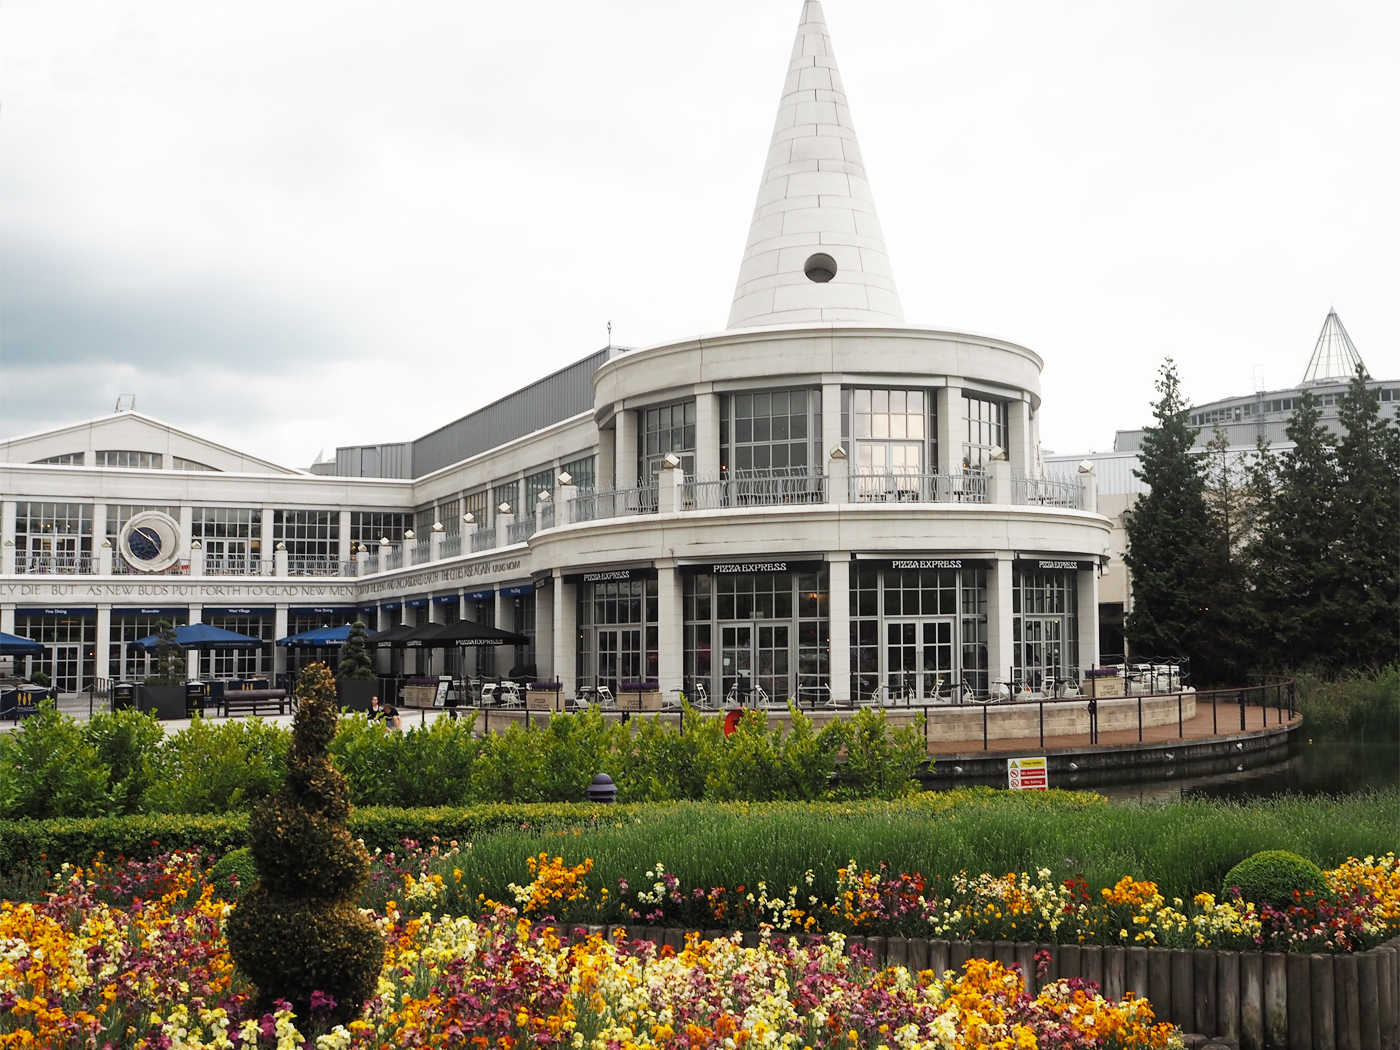 Bluewater shopping and retail park